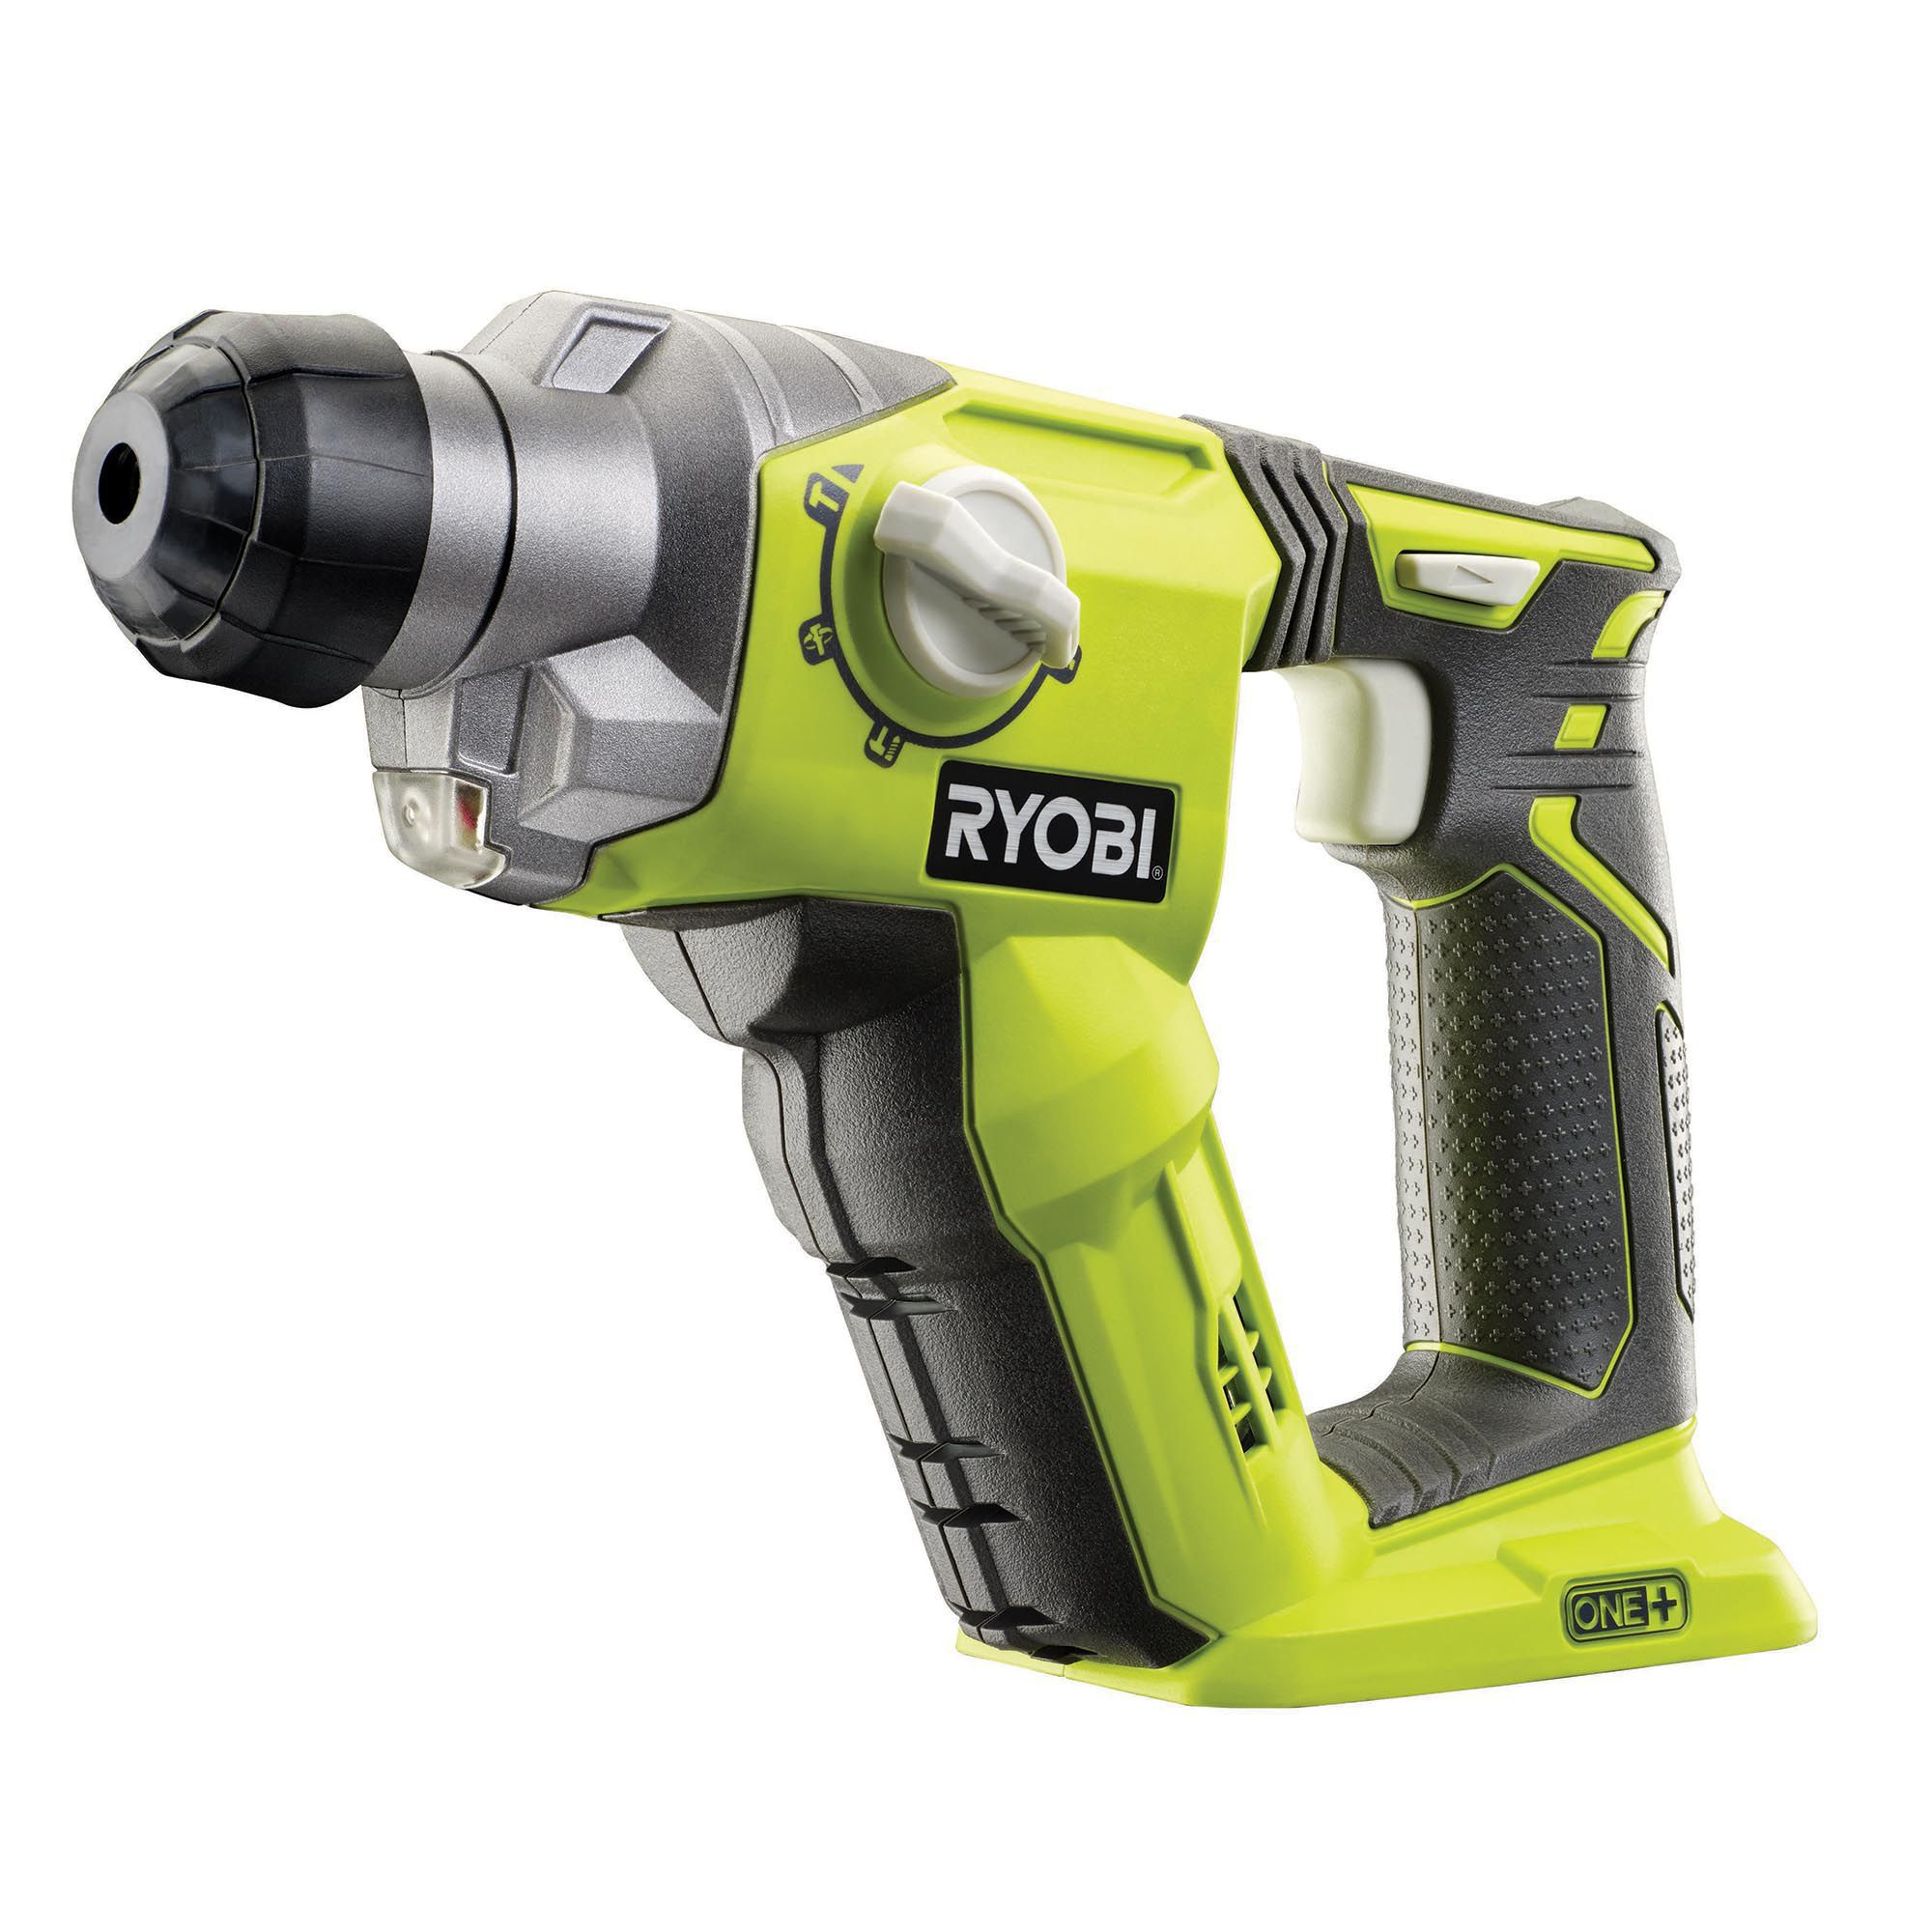 Ryobi One+ Cordless 18V Lithium-ion SDS plus drill Without batteries  R18SDS-0 | Departments | DIY at B&Q